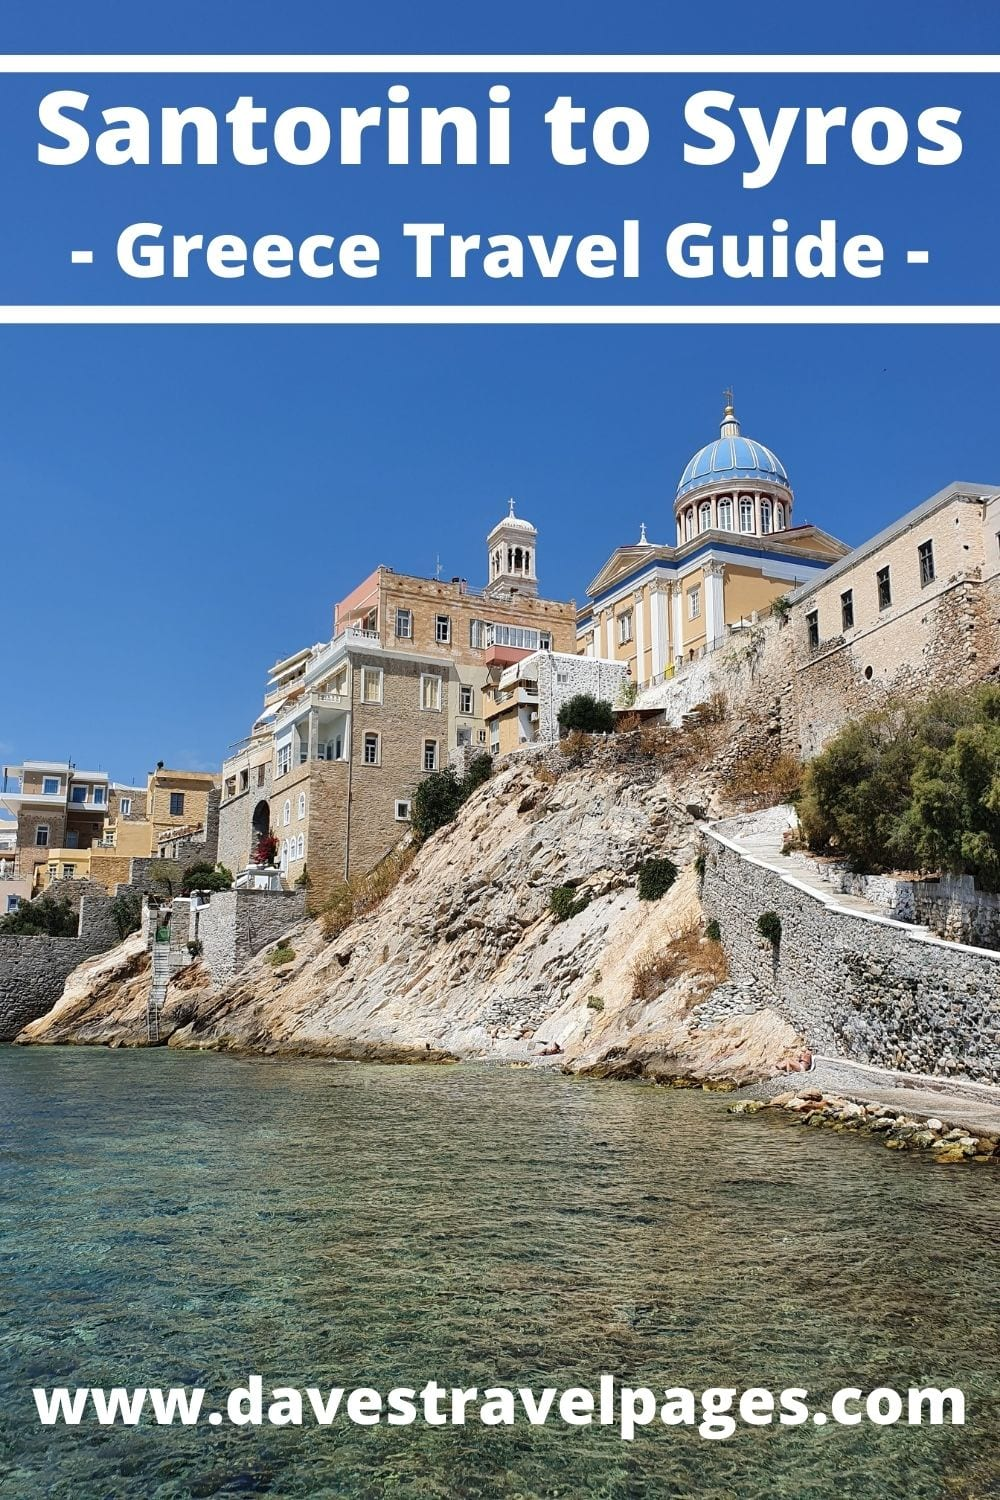 How to get from Santorini to Syros in Greece